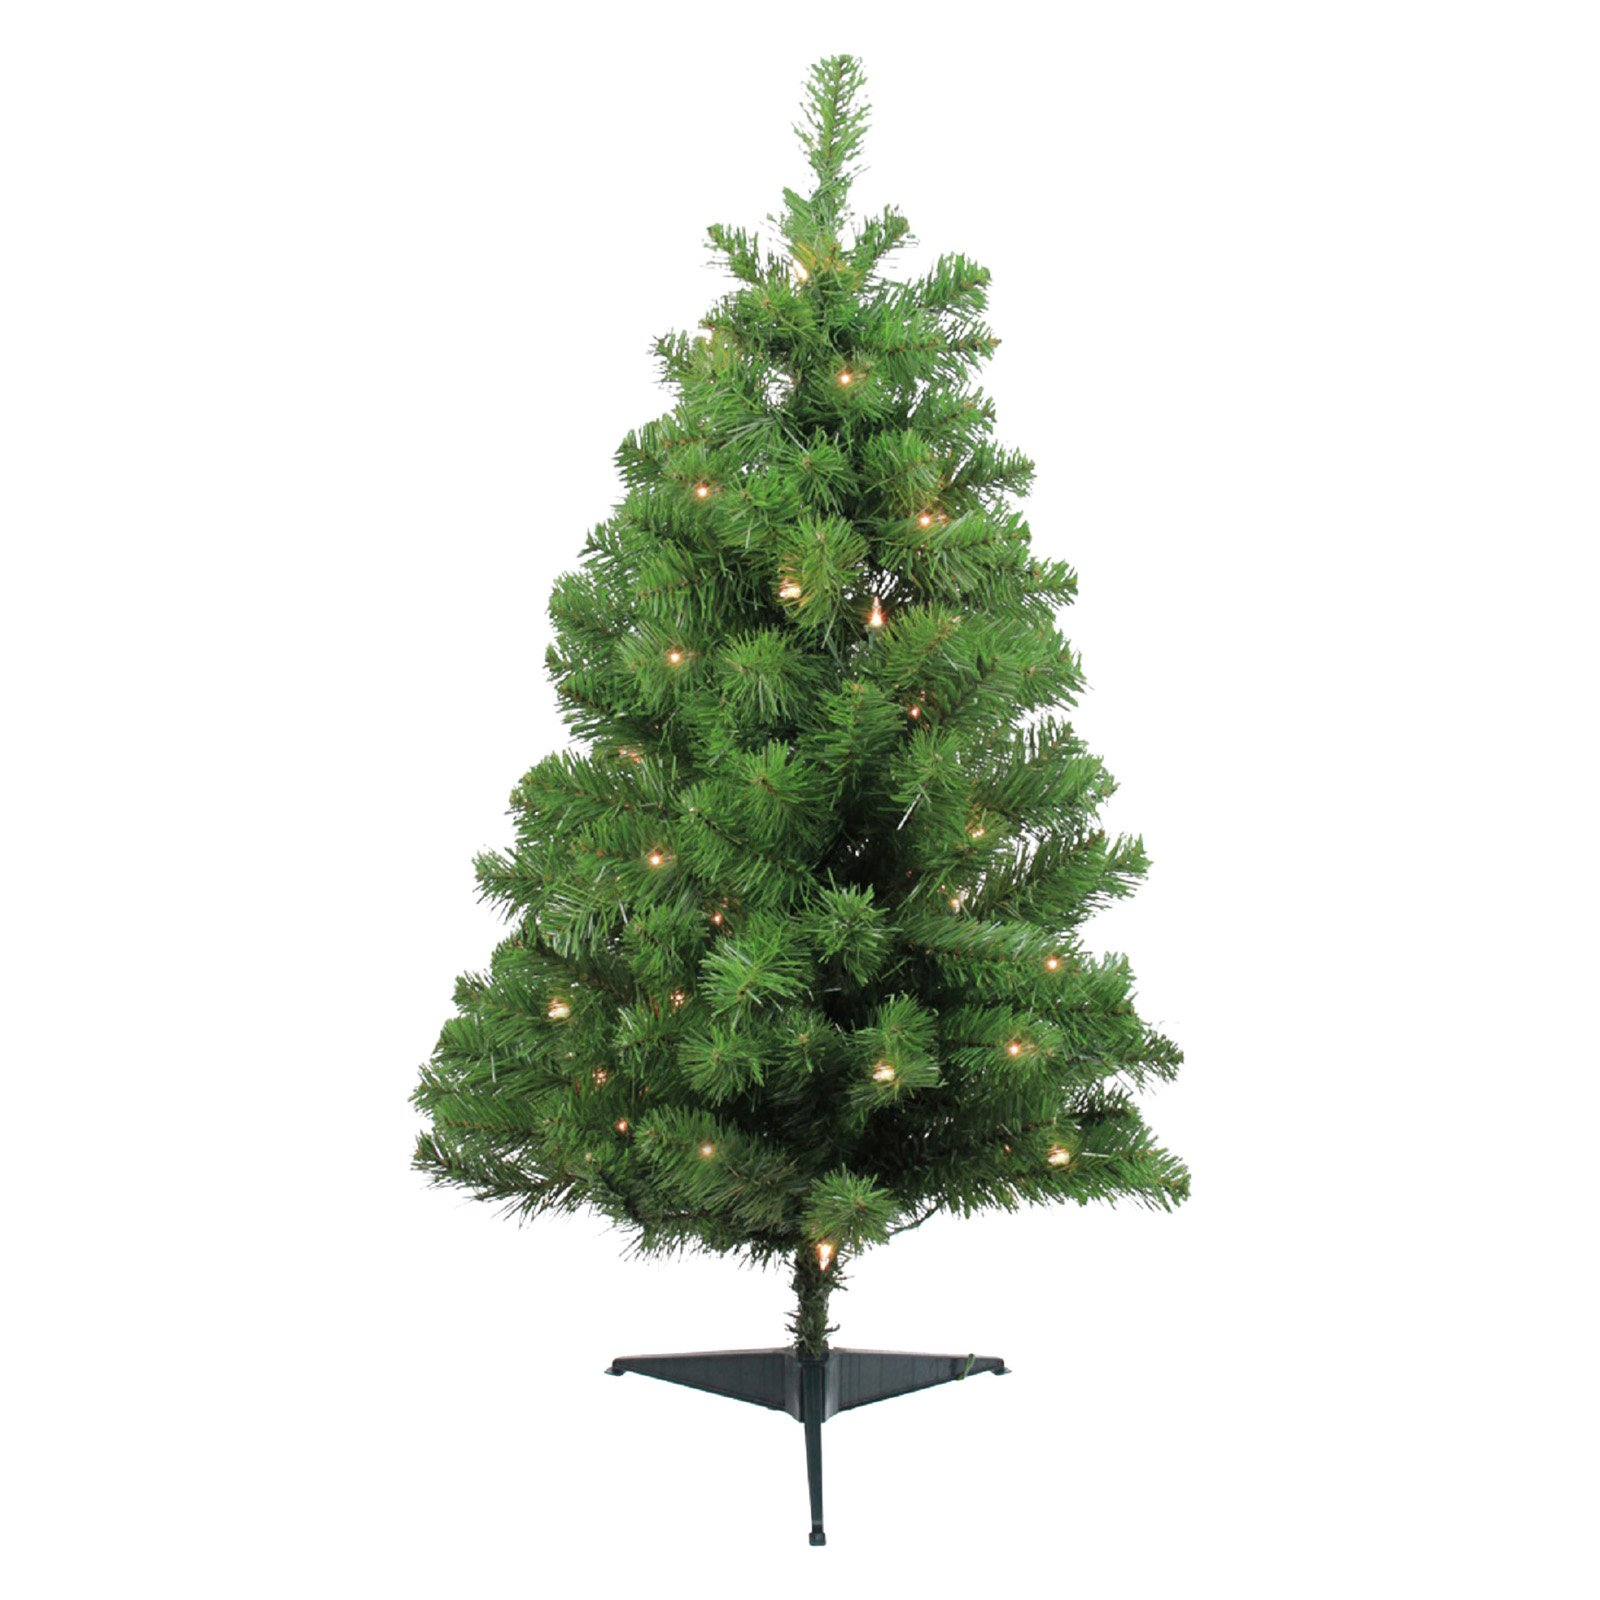 3 Foot Prelit Christmas Trees.Northlight 3 Ft Traditional Noble Fir Medium Pre Lit